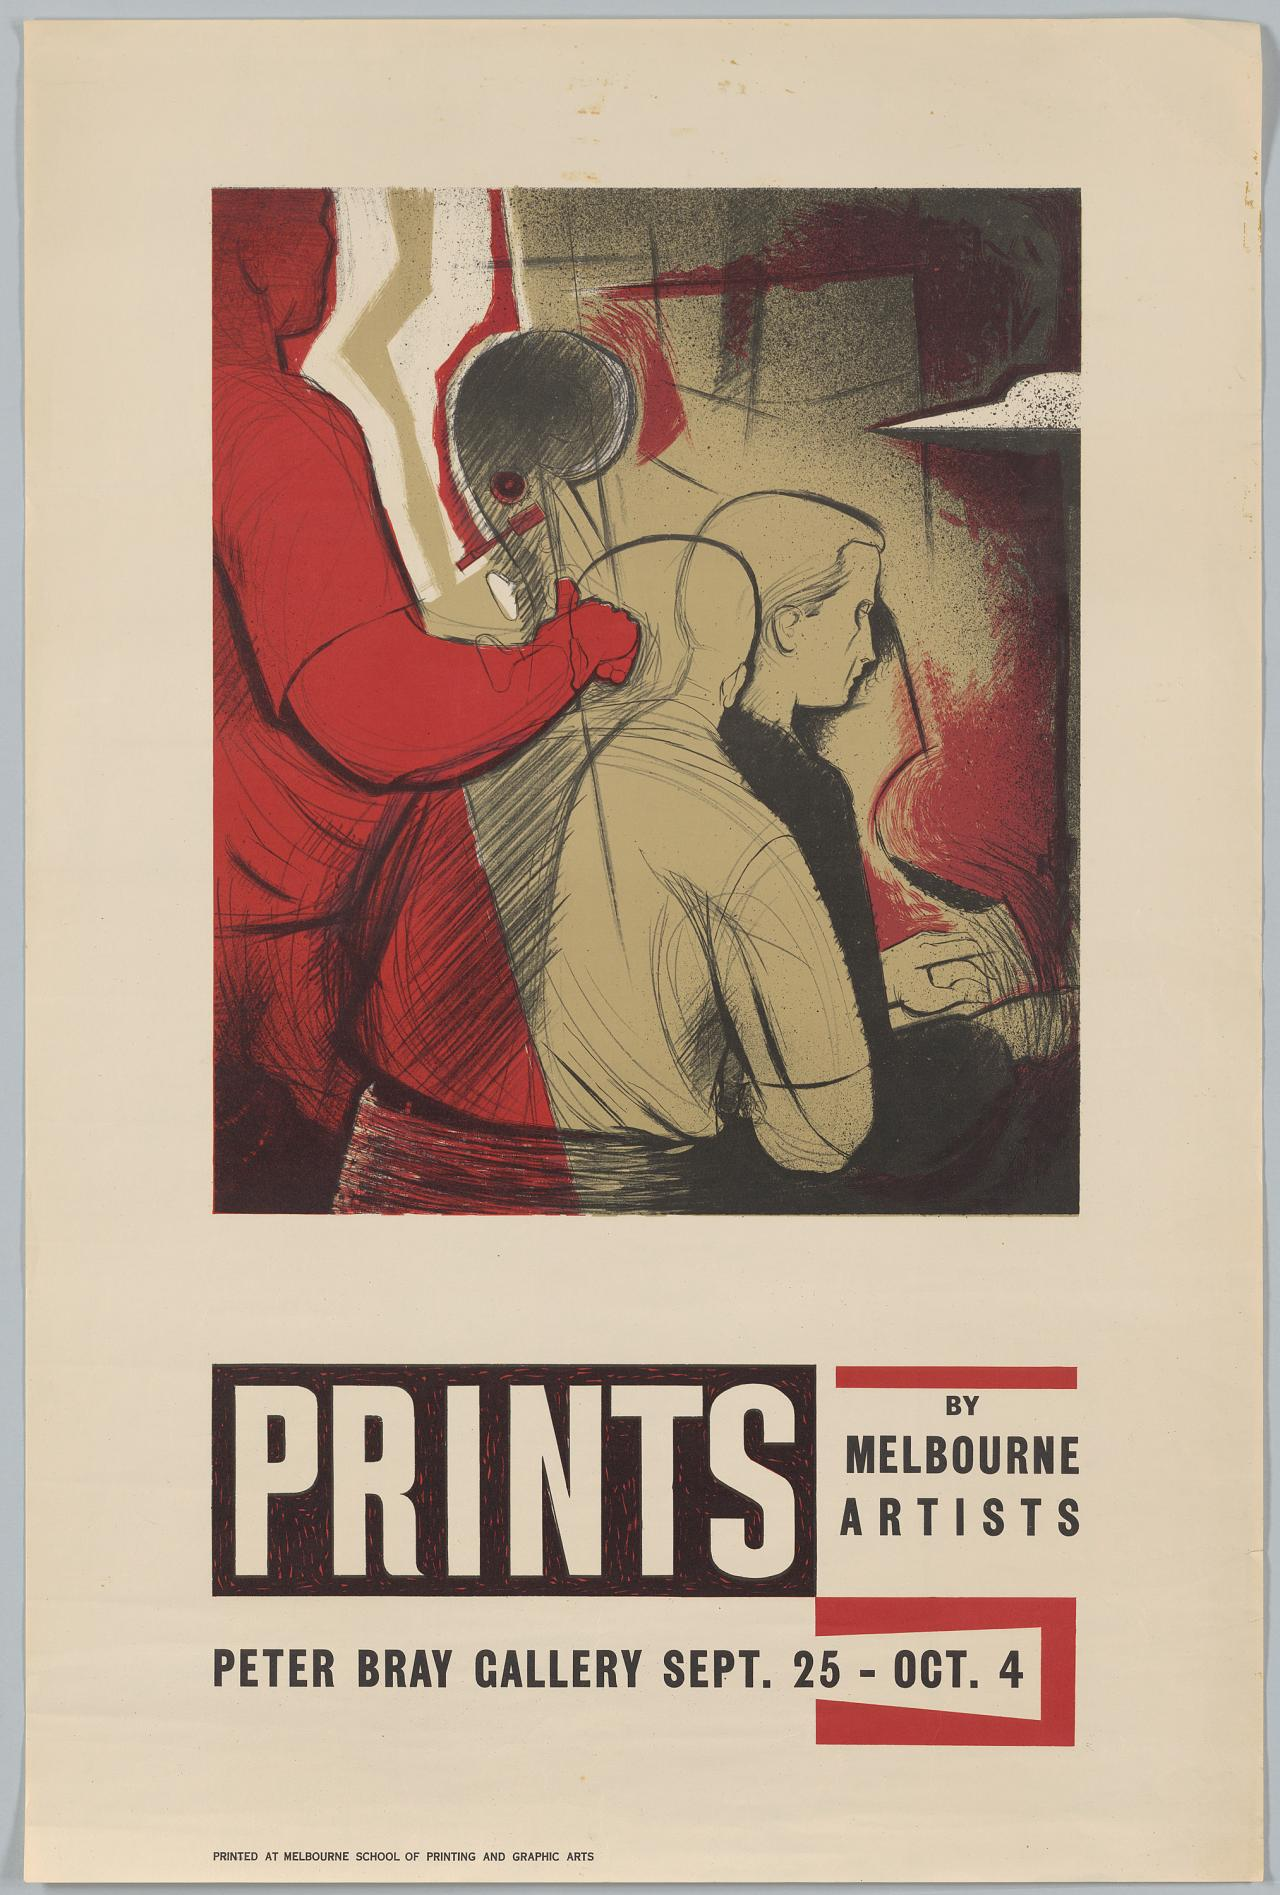 Prints by Melbourne artists